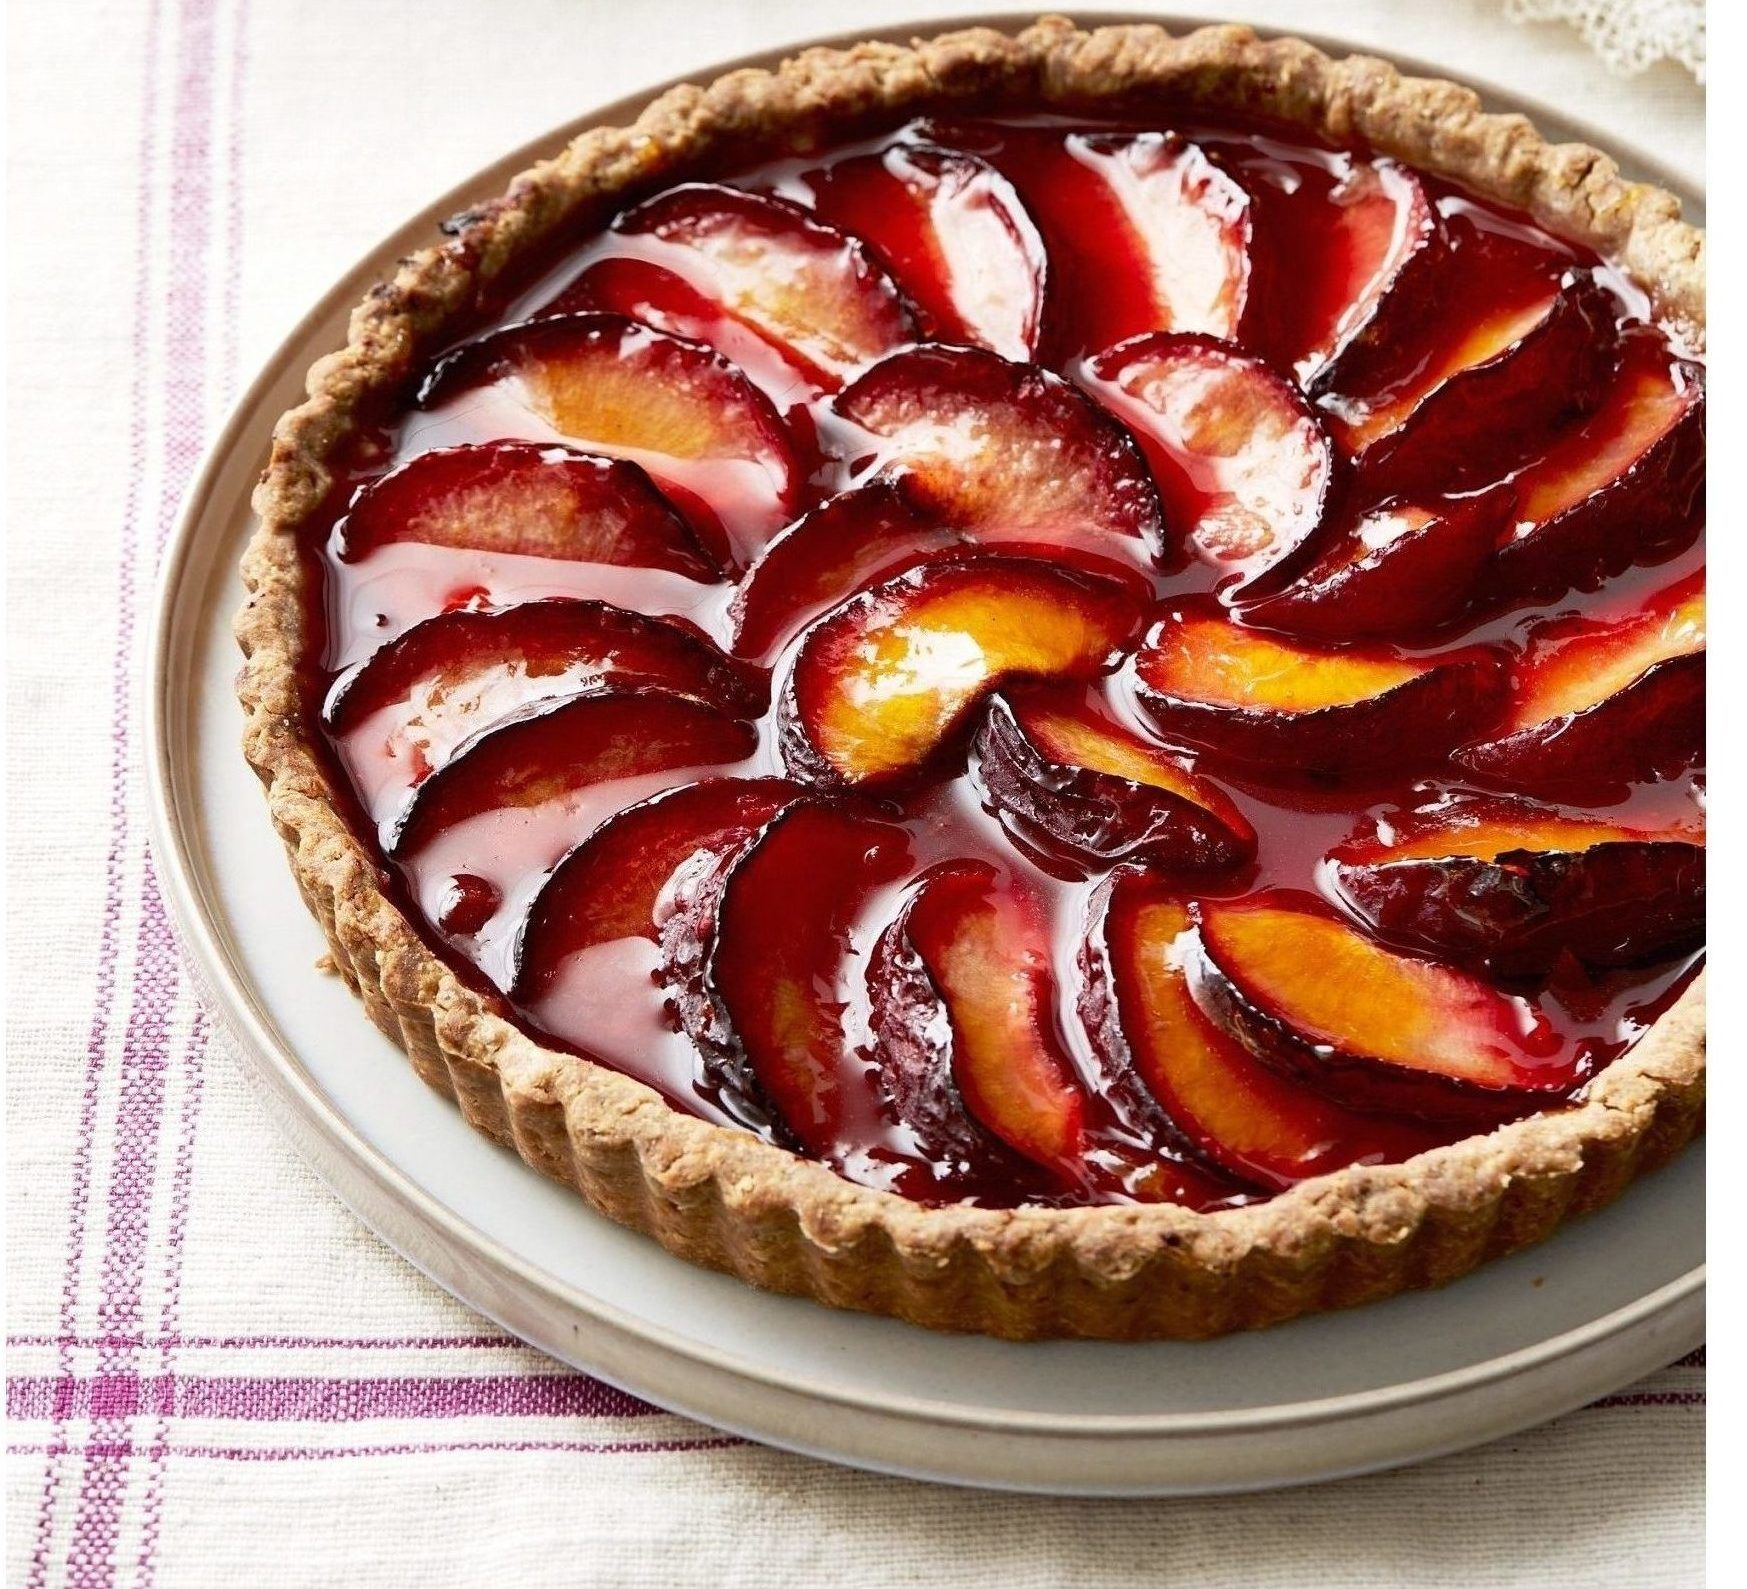 Just Wanted To Share This Delicious Recipe From Lidia Bastianich With You Buon Gusto Plum Tart Plum Dessert Plum Recipes Plum Tart